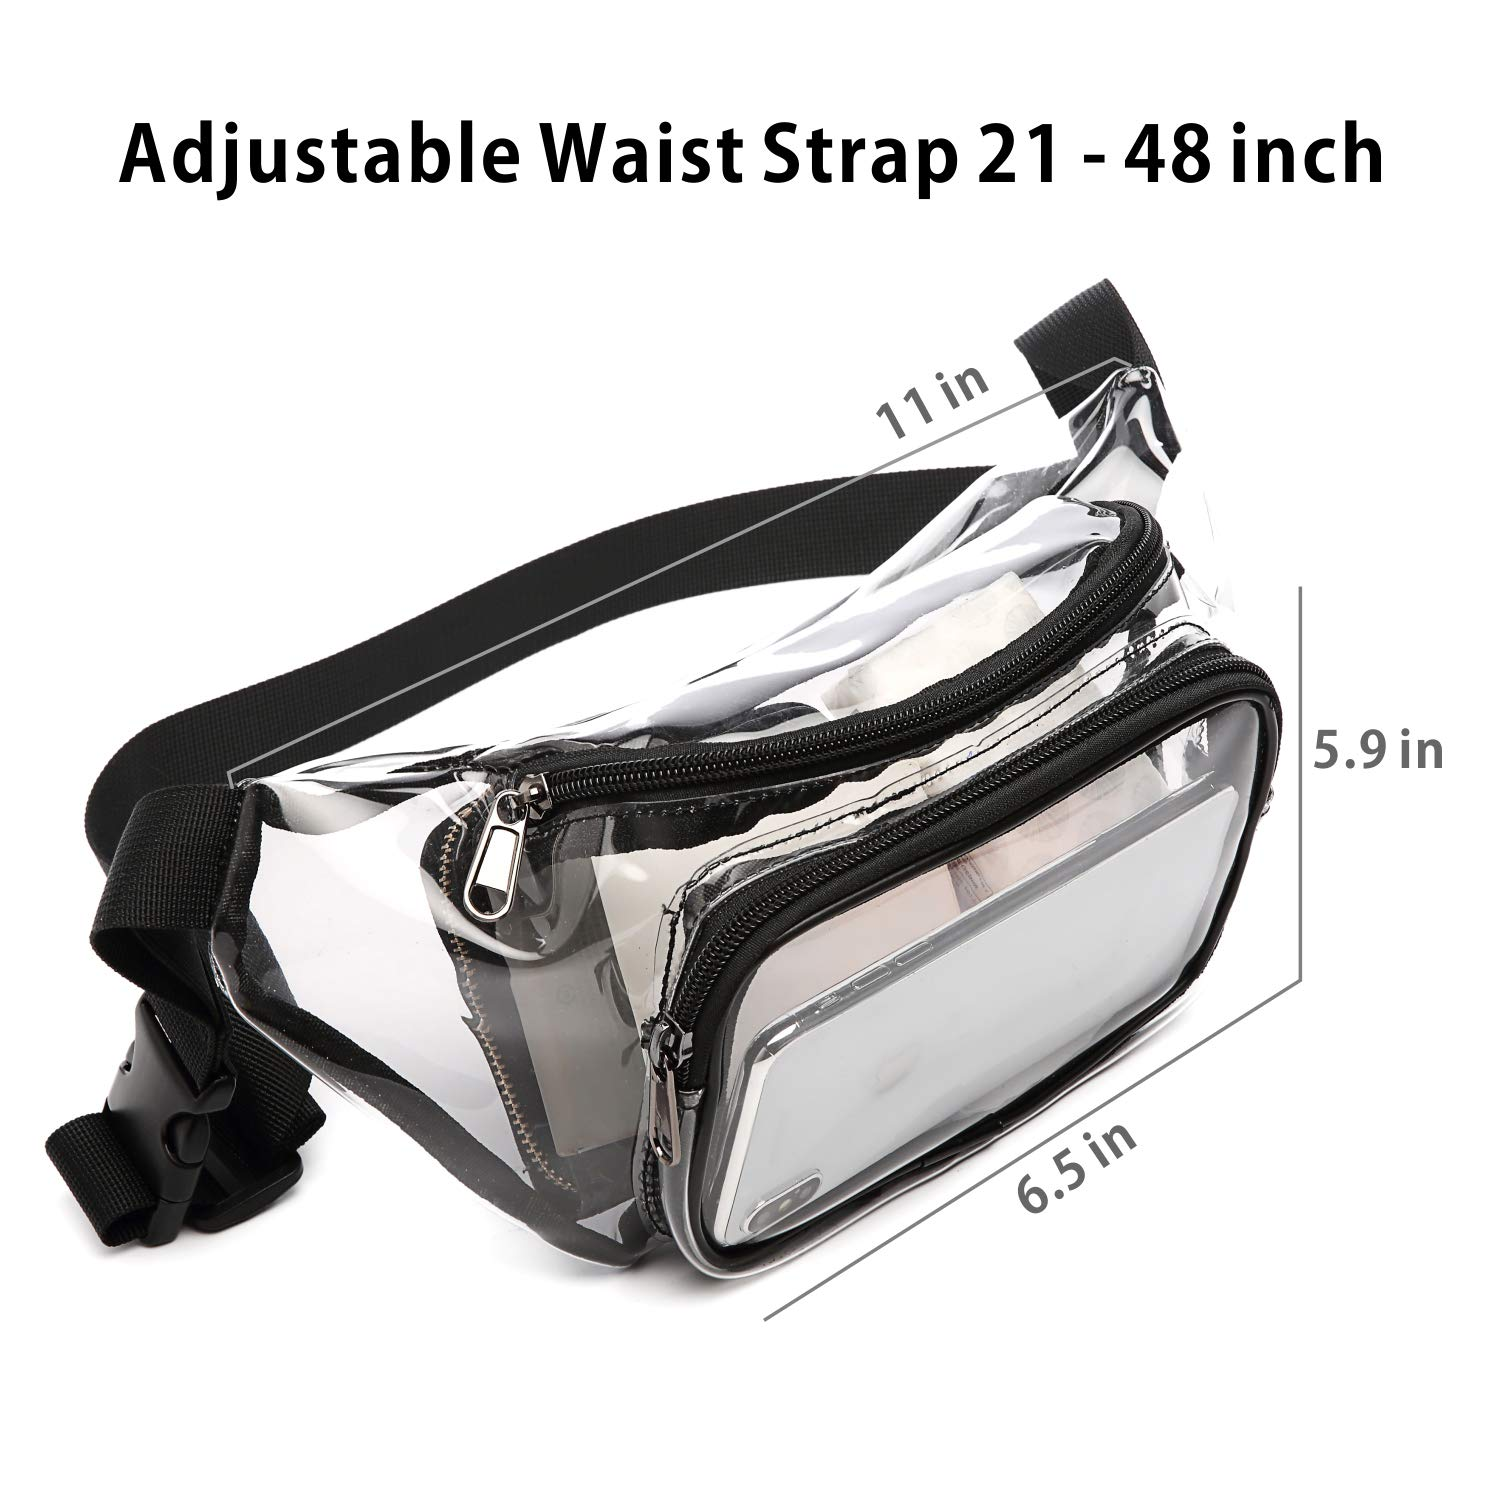 Men BuyAgain Cute Clear Waist Bag Approved for NFL Games Concert Travel Fit for Women Clear Fanny Pack Black